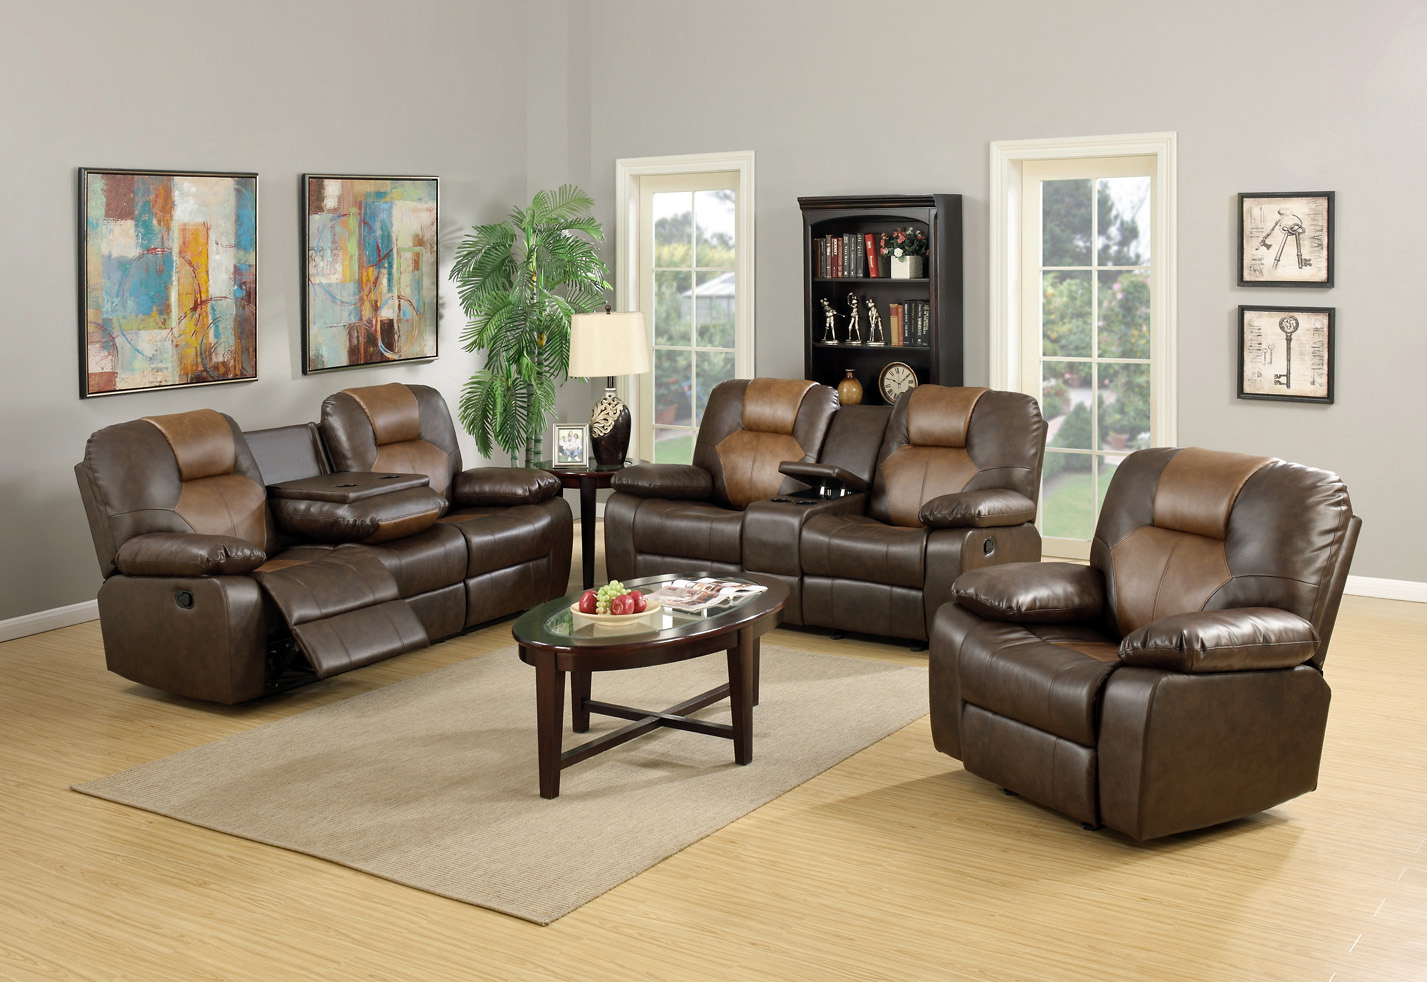 macy s furniture sofa beds how to dispose two tone reclining leather and loveseat – mac's